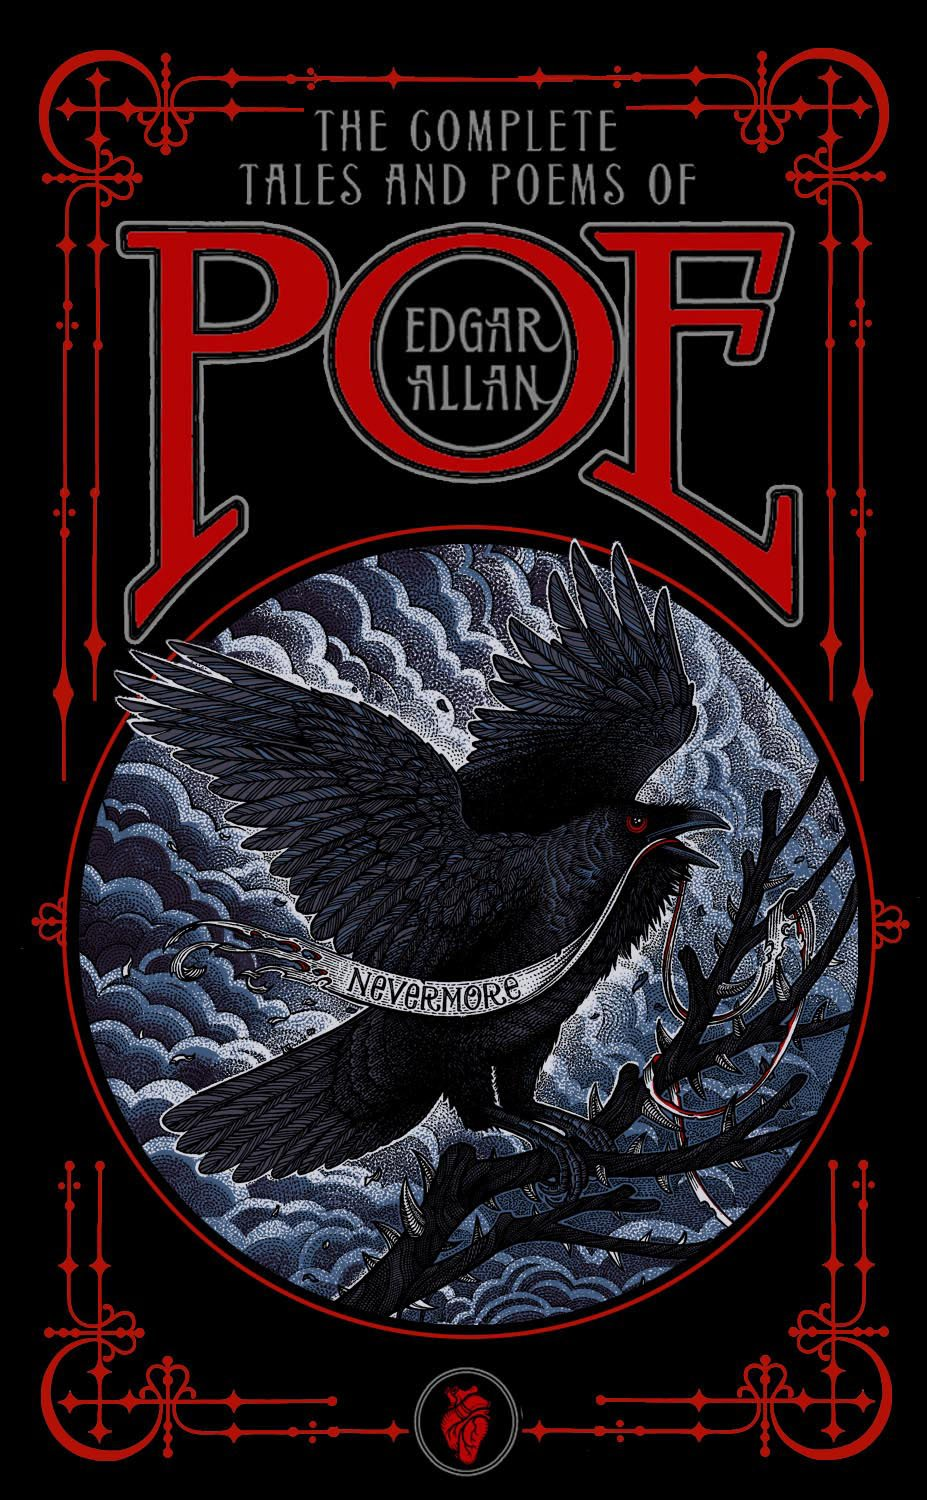 The Complete Tales and Poems of Edgar Allan Poe: Edgar Allan Poe:  9781435106345: Amazon.com: Books